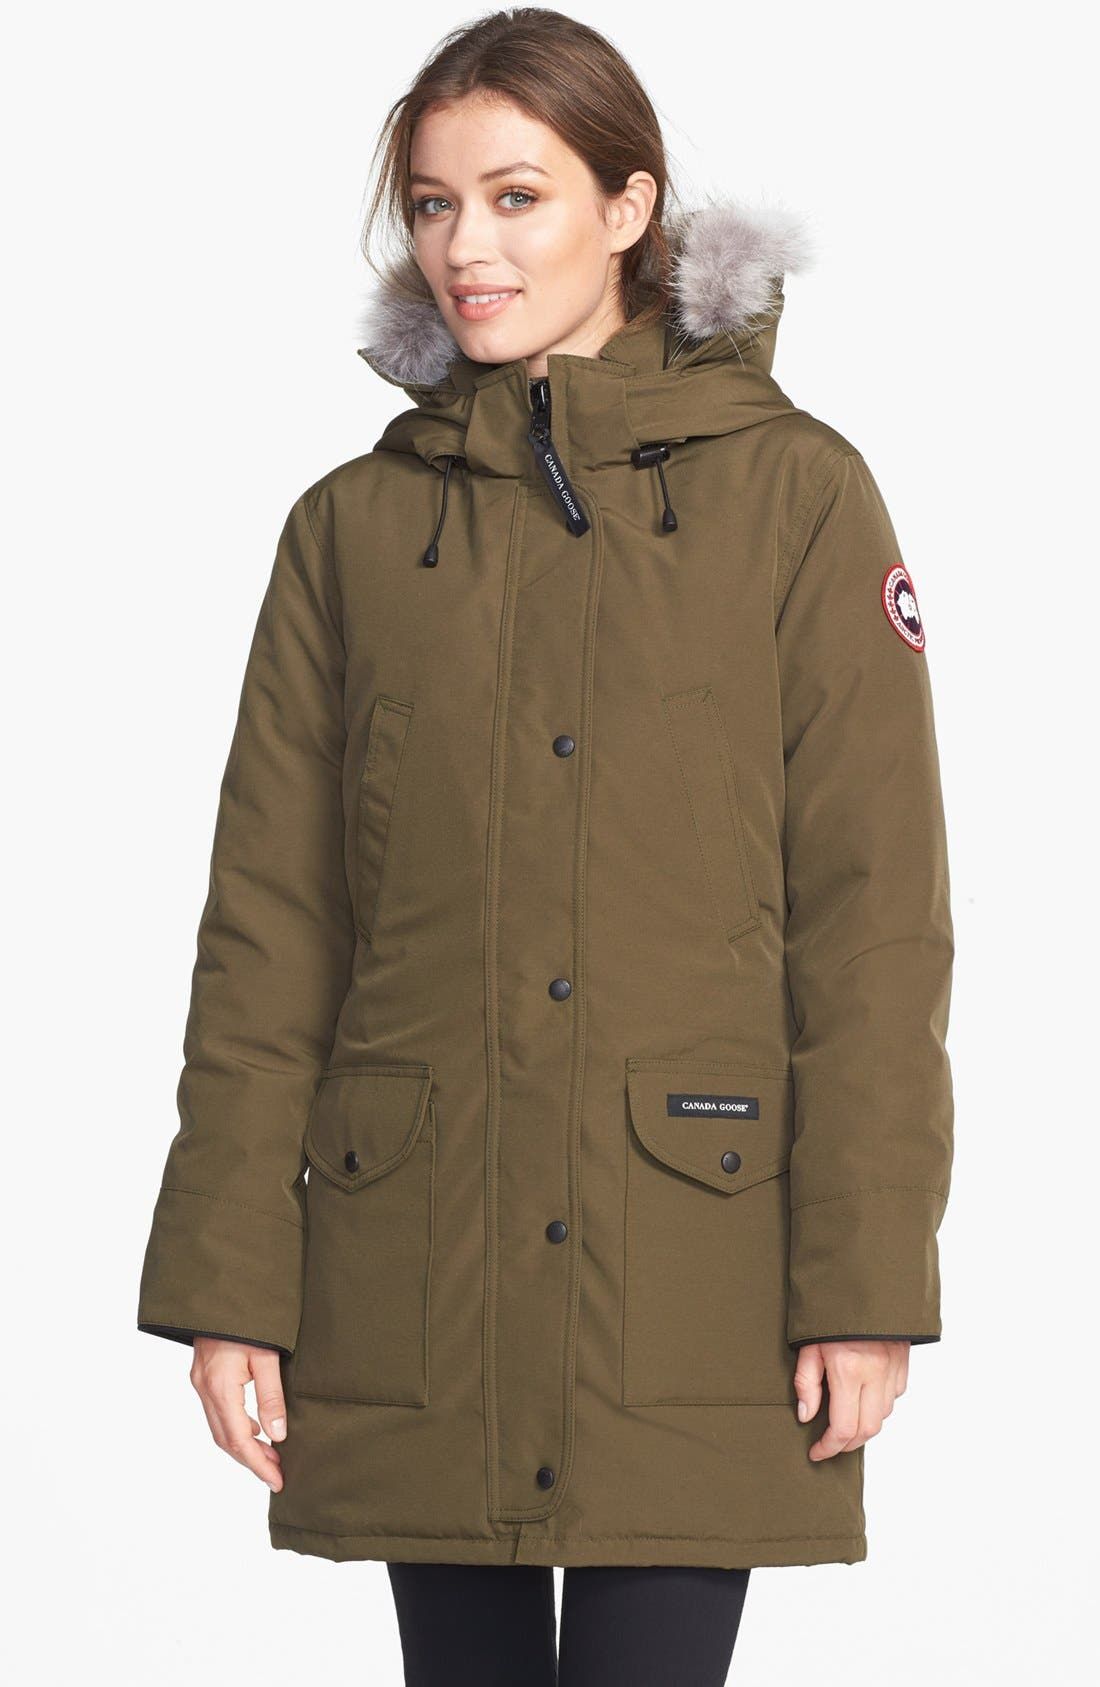 Alternate Image 1 Selected - Canada Goose 'Trillium' Regular Fit Down Parka with Genuine Coyote Fur Trim